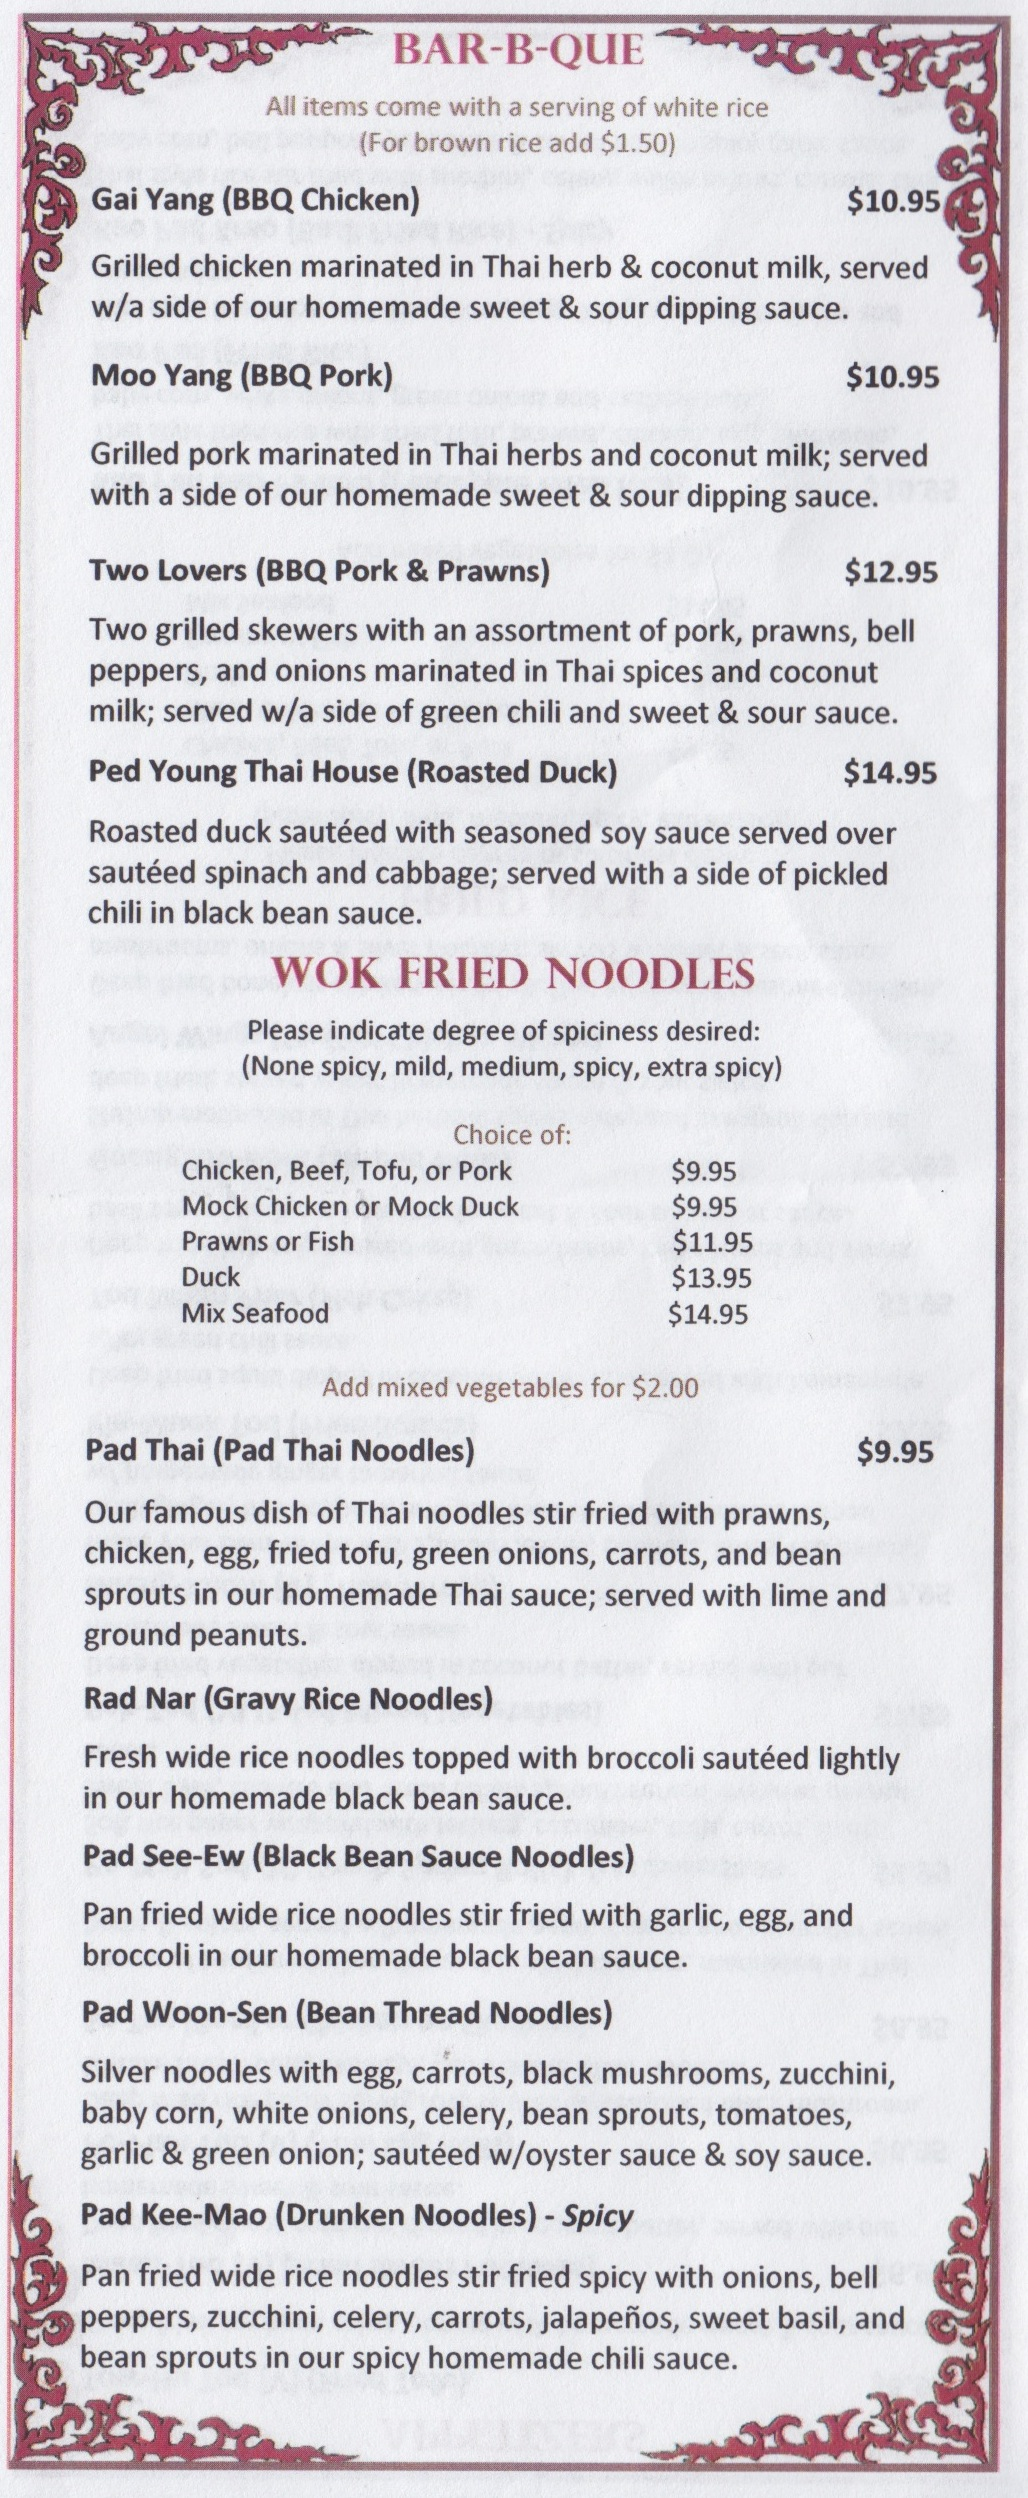 Thai House BBQ & Wok Fried Noodles